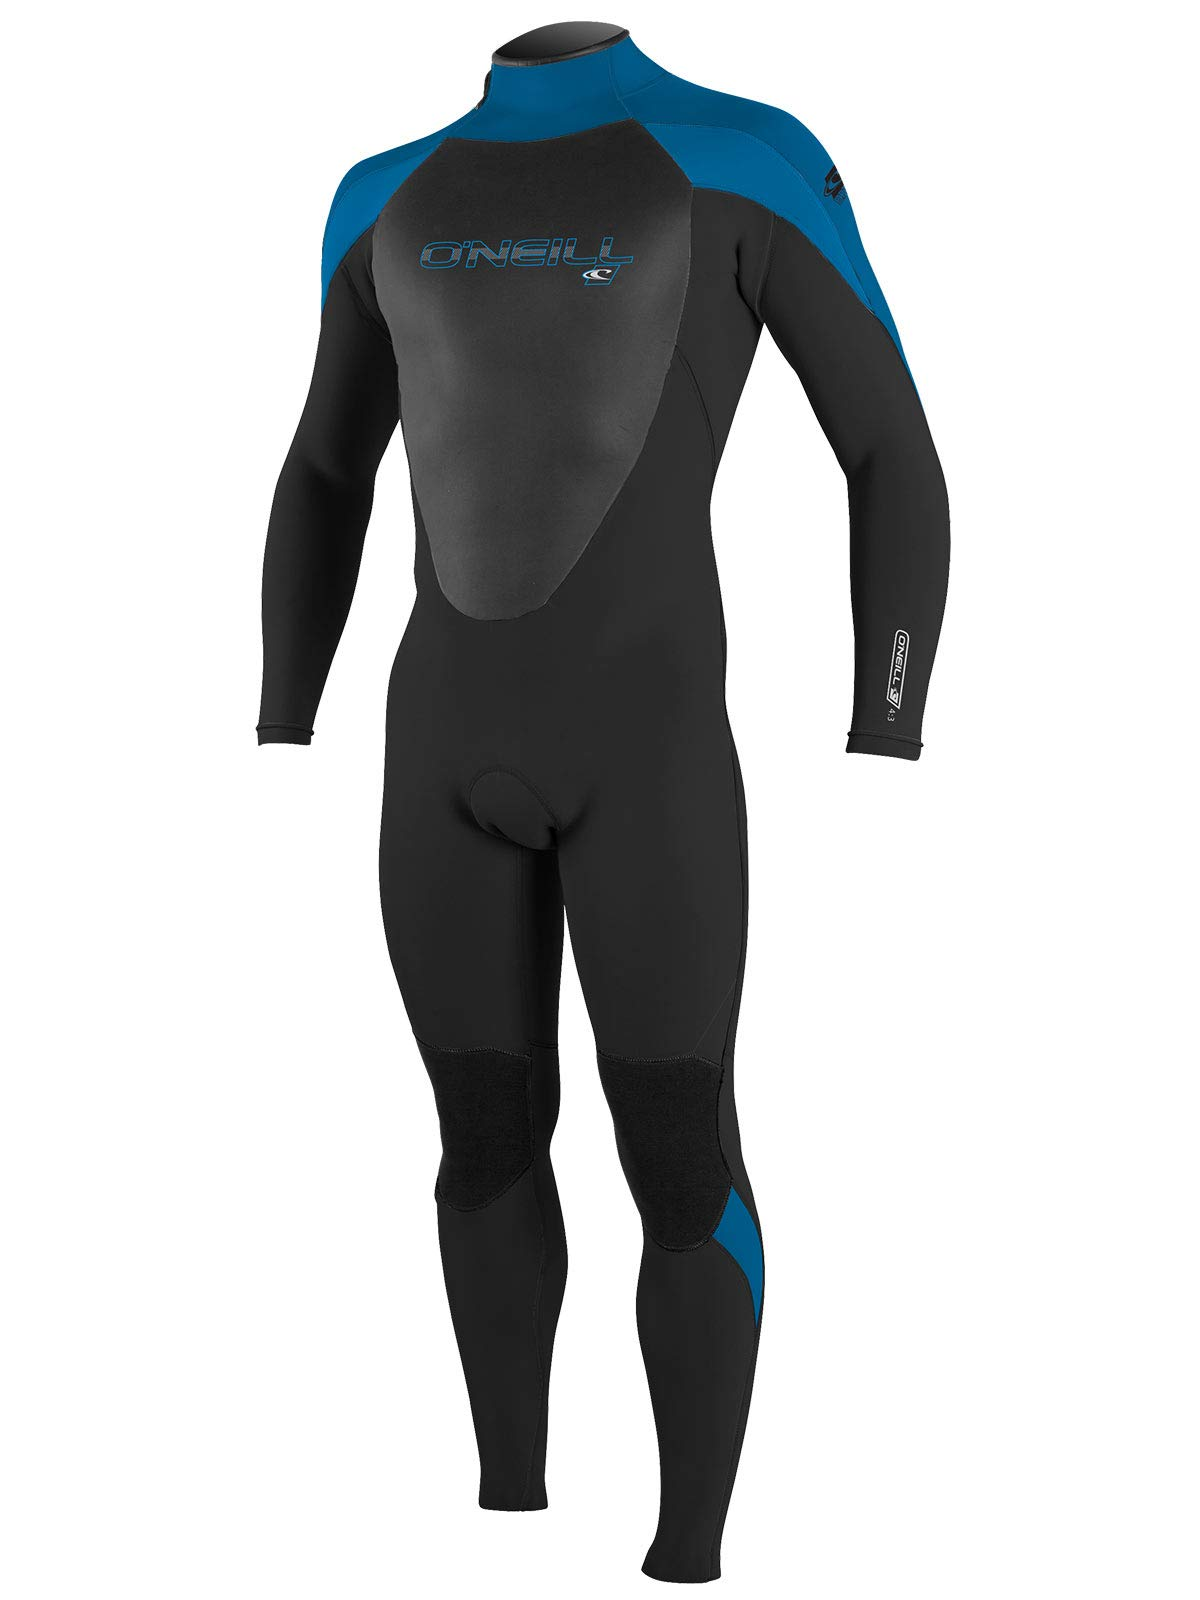 O'Neill Men's Epic 4/3mm Full Wetsuit 3XLS Black/Ocean/Brite Blue (4212)